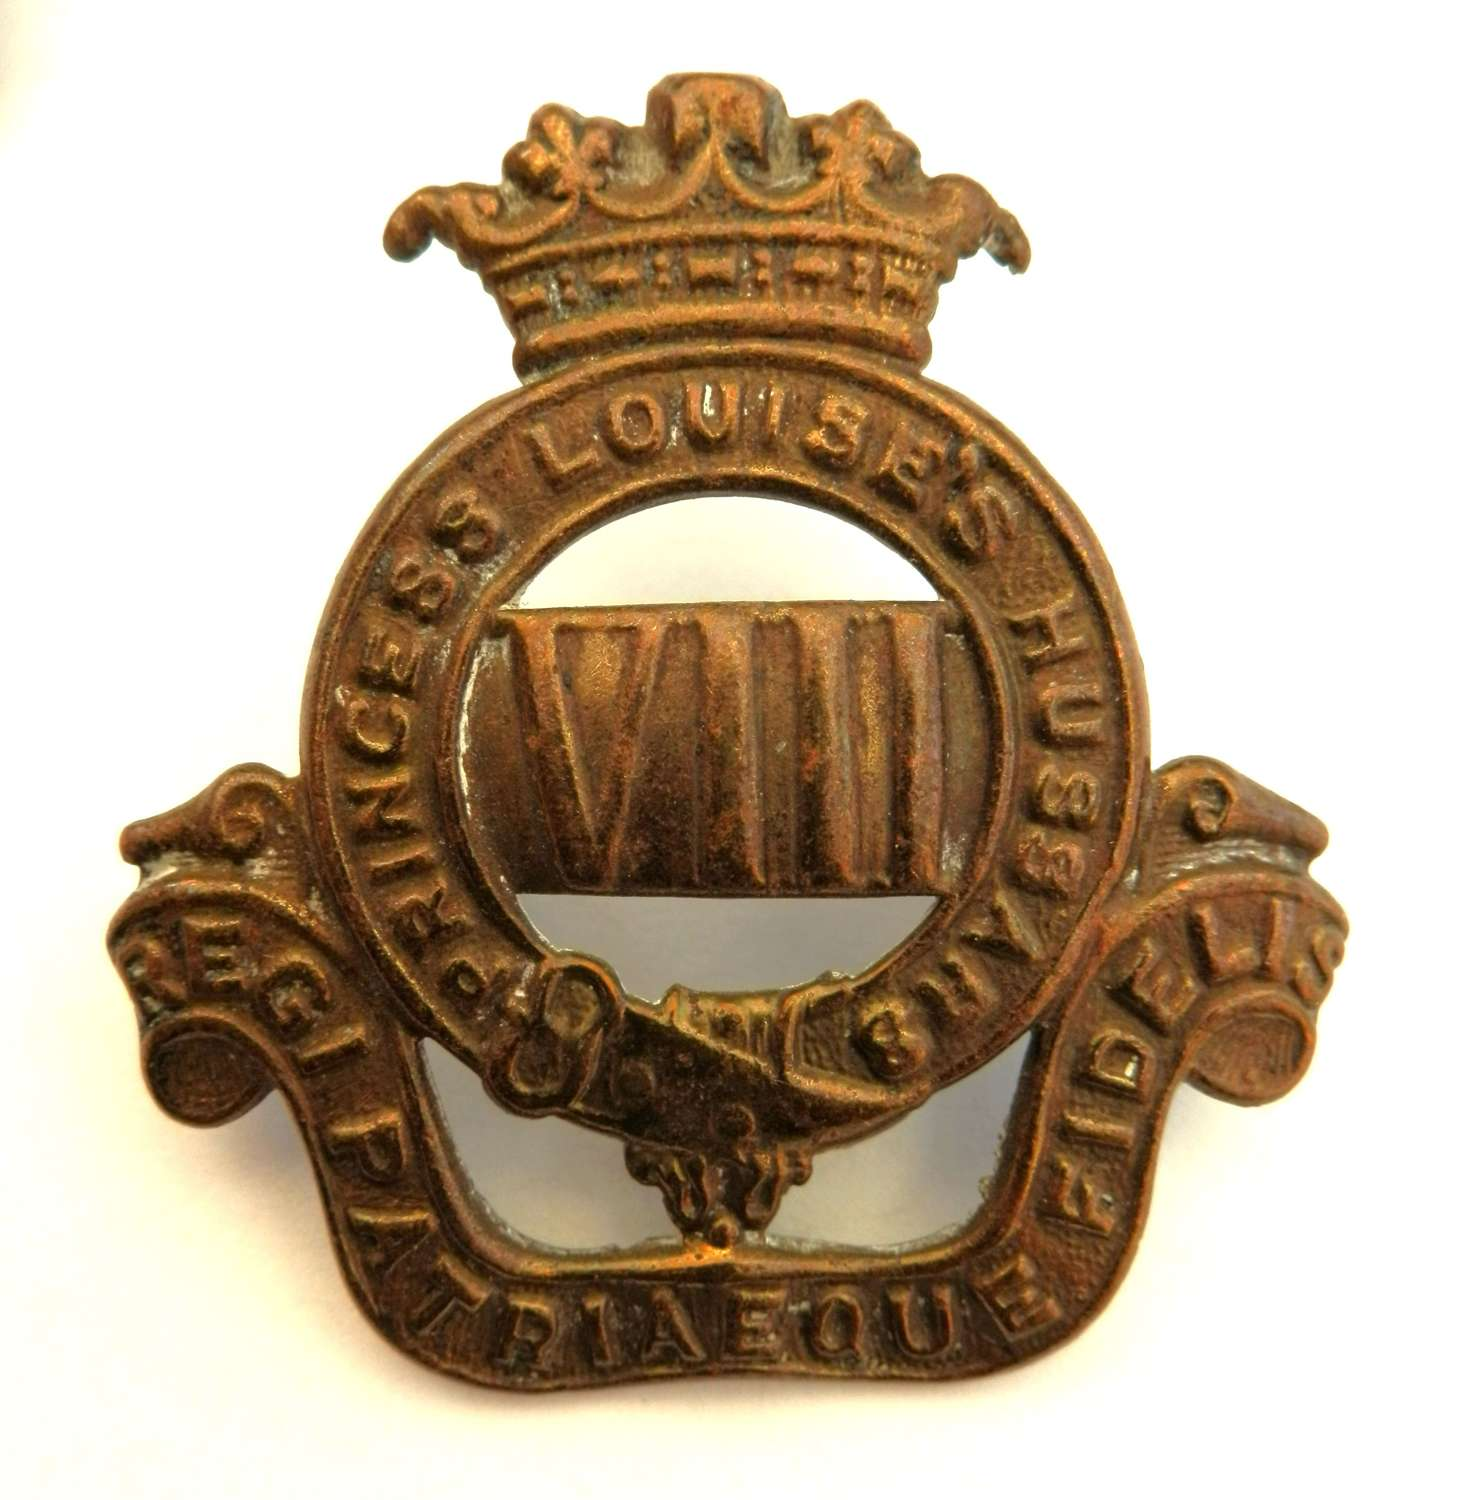 The 8th Princess Louise's Hussars Canadian Cap Badge.